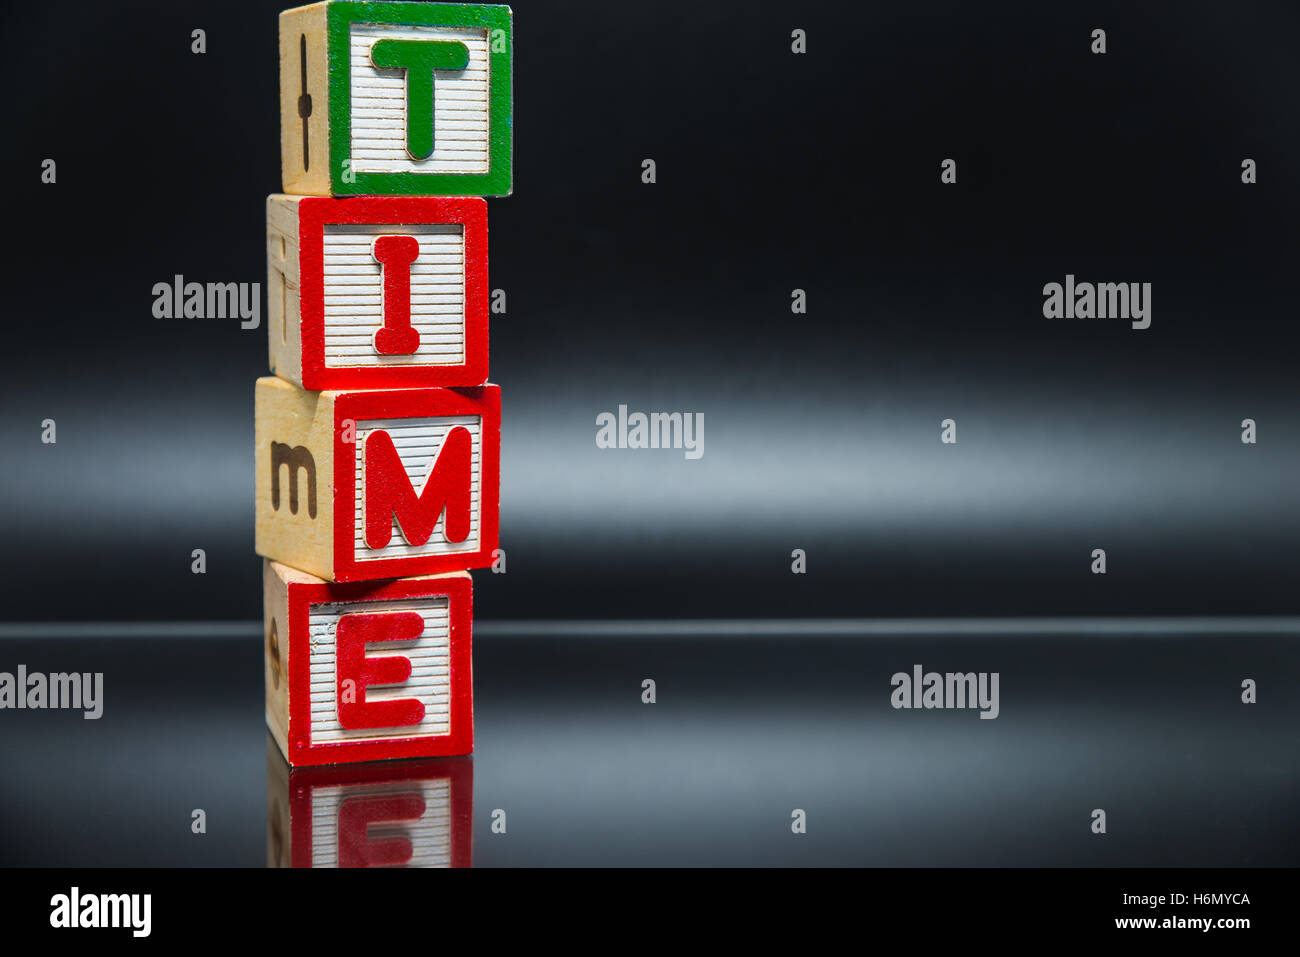 TIME word wooden block arrange in vertical style on black background and selective focus - Stock Image